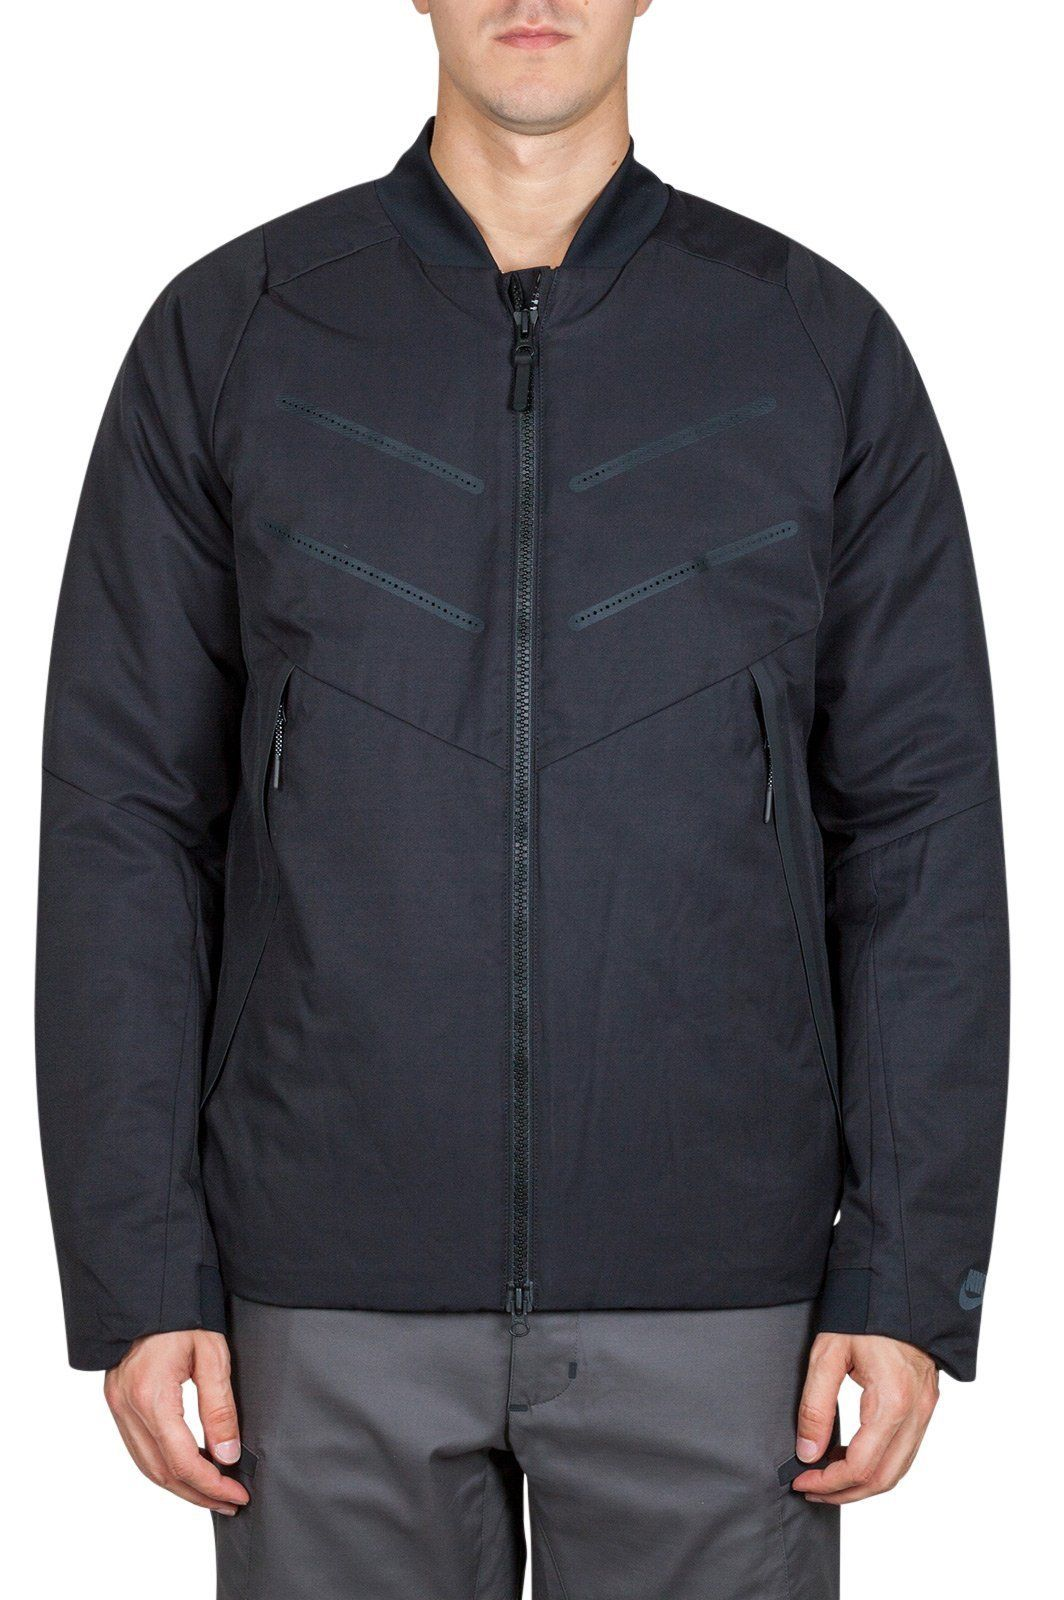 4bbe0887d The Nike Sportswear AeroLoft Bomber Men's Jacket offers lightweight defence  against the cold. It features